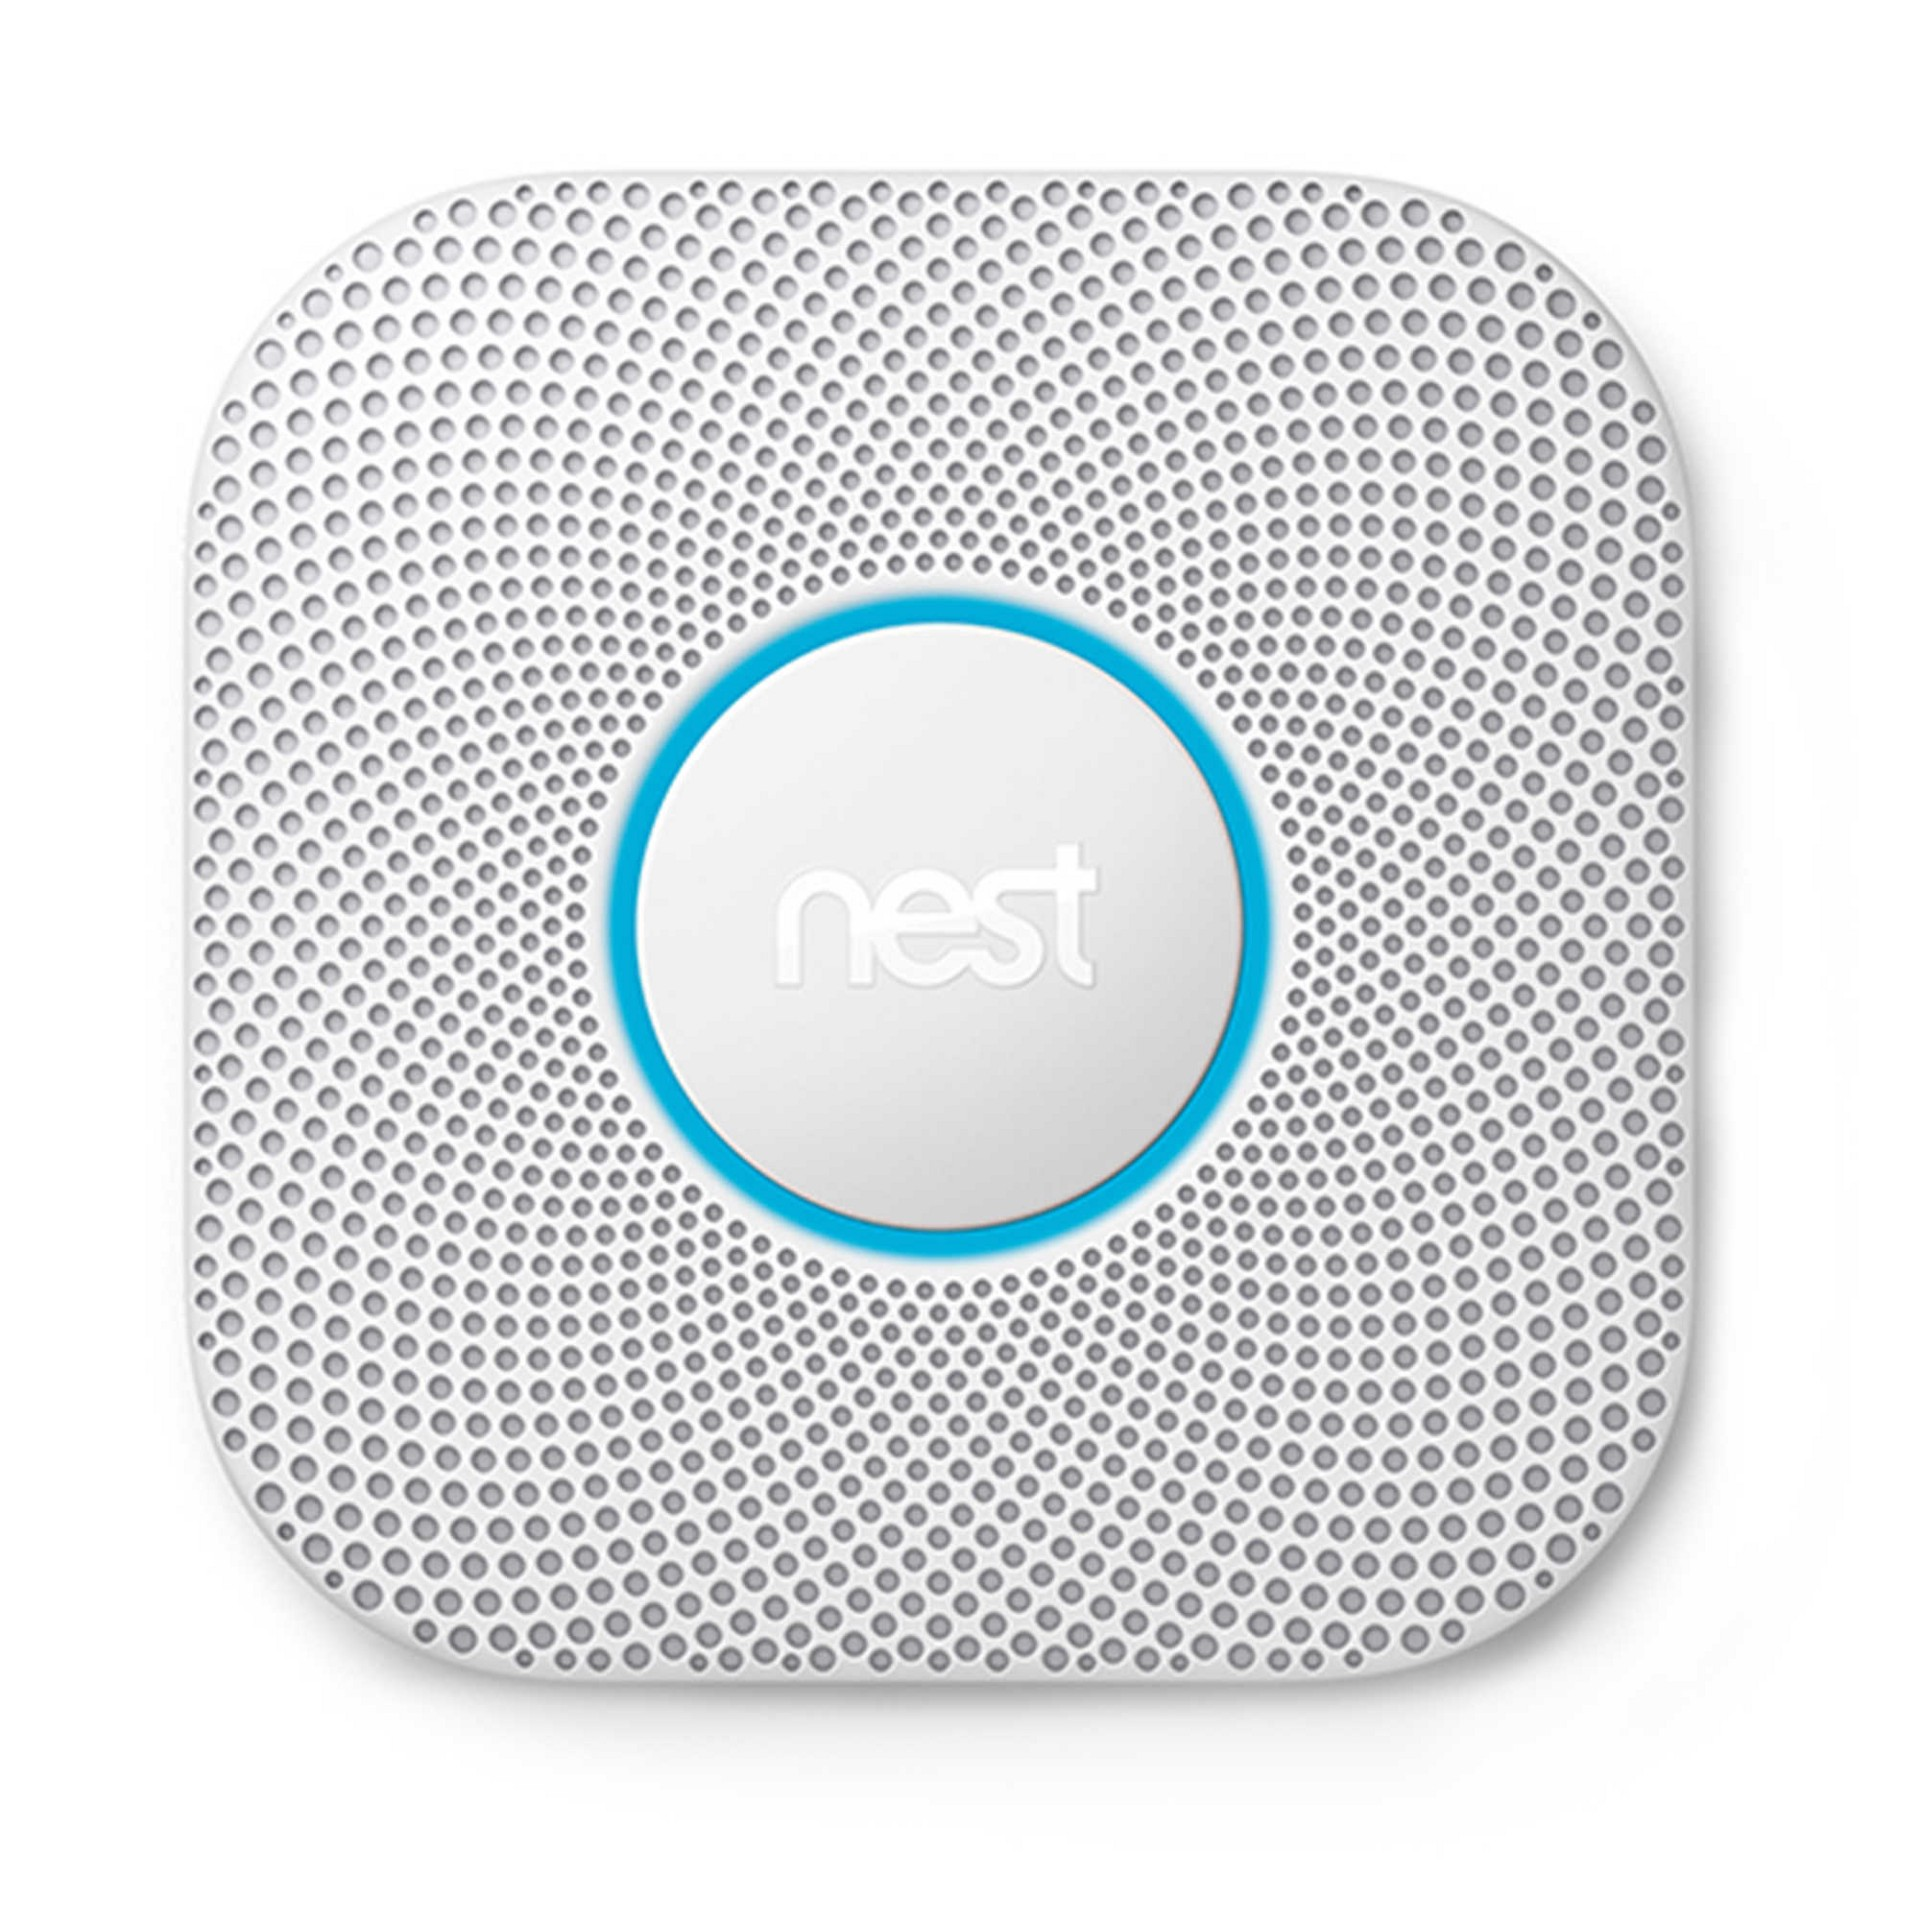 5 Smart Home Fire Prevention Devices Any Homeowner, Airbnb Host ...